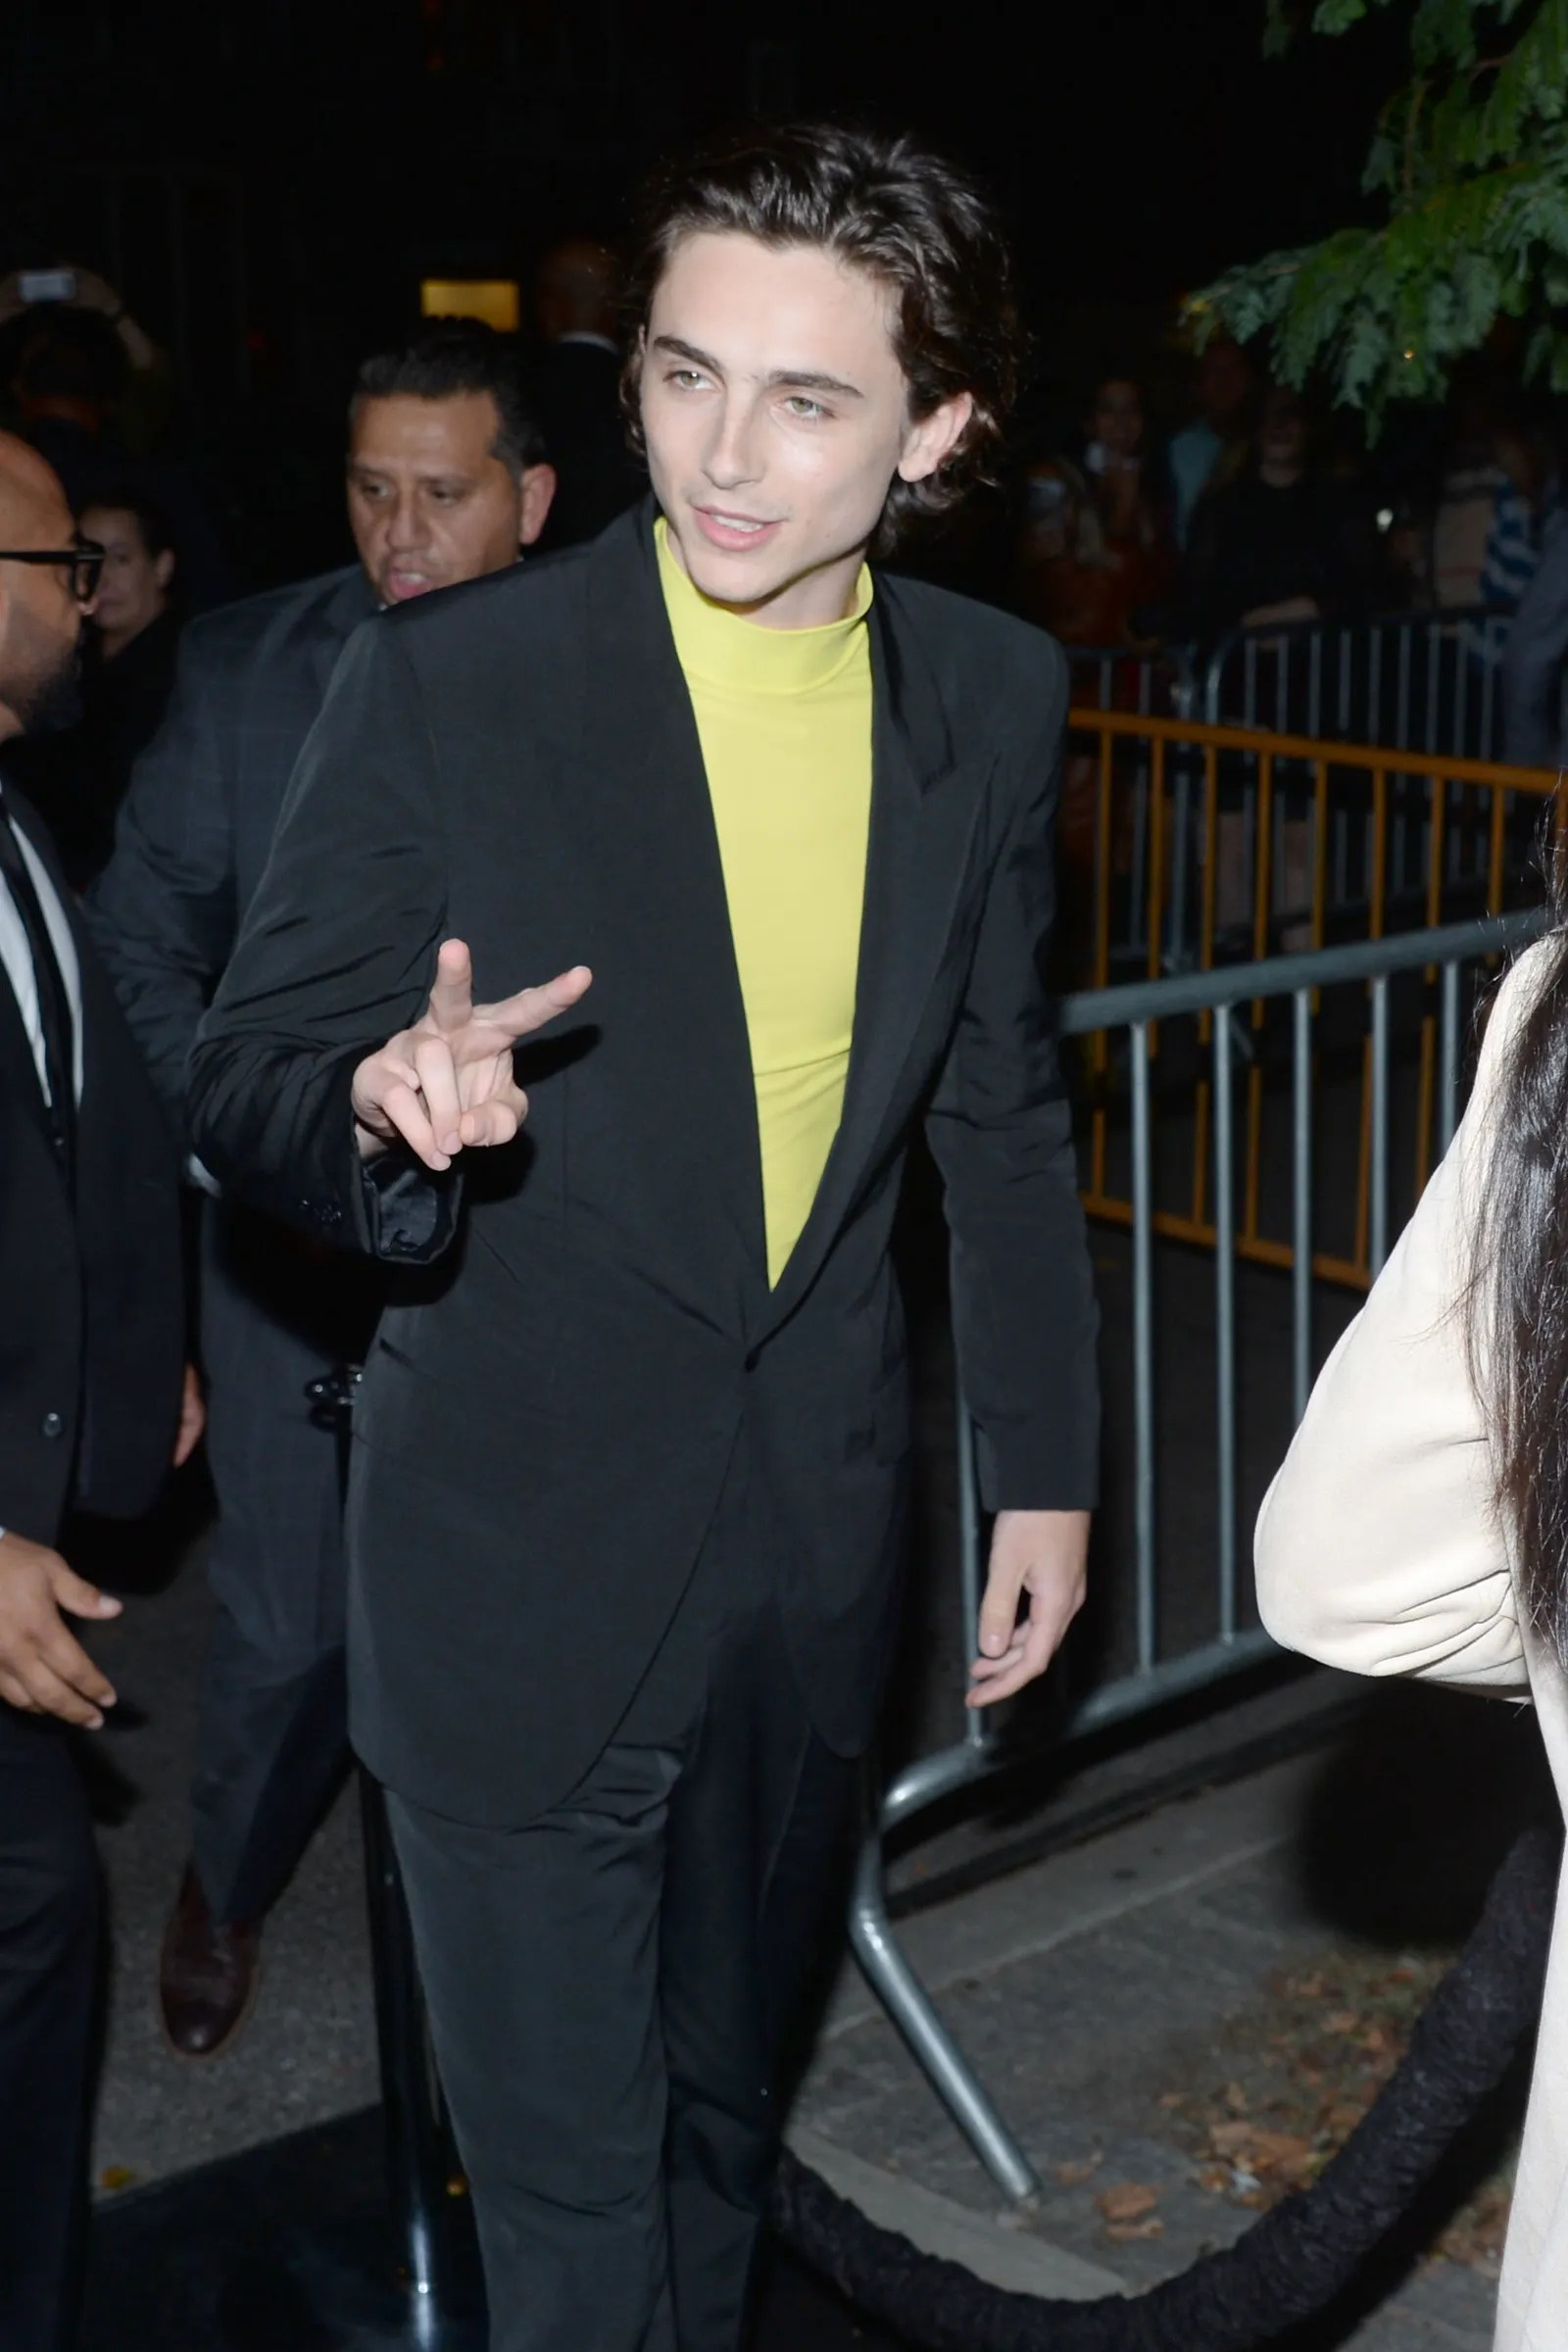 a man walking at night wearing a neon green turtleneck underneath a black blazer and pants holding up a peace symbol